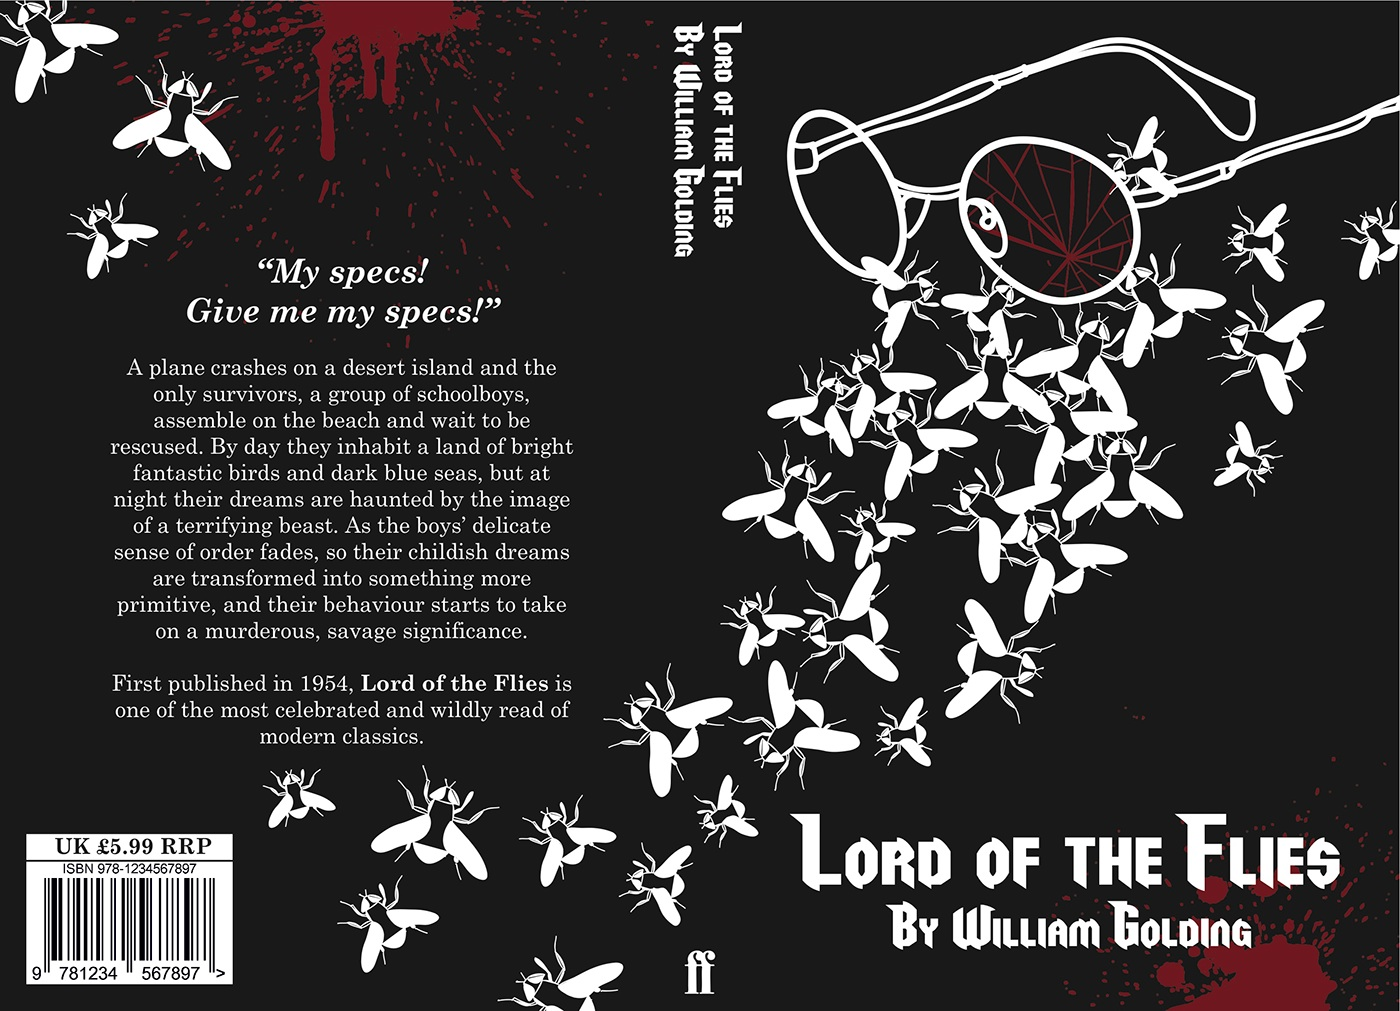 Book Cover Design Jobs London : Book cover design lord of the flies on behance